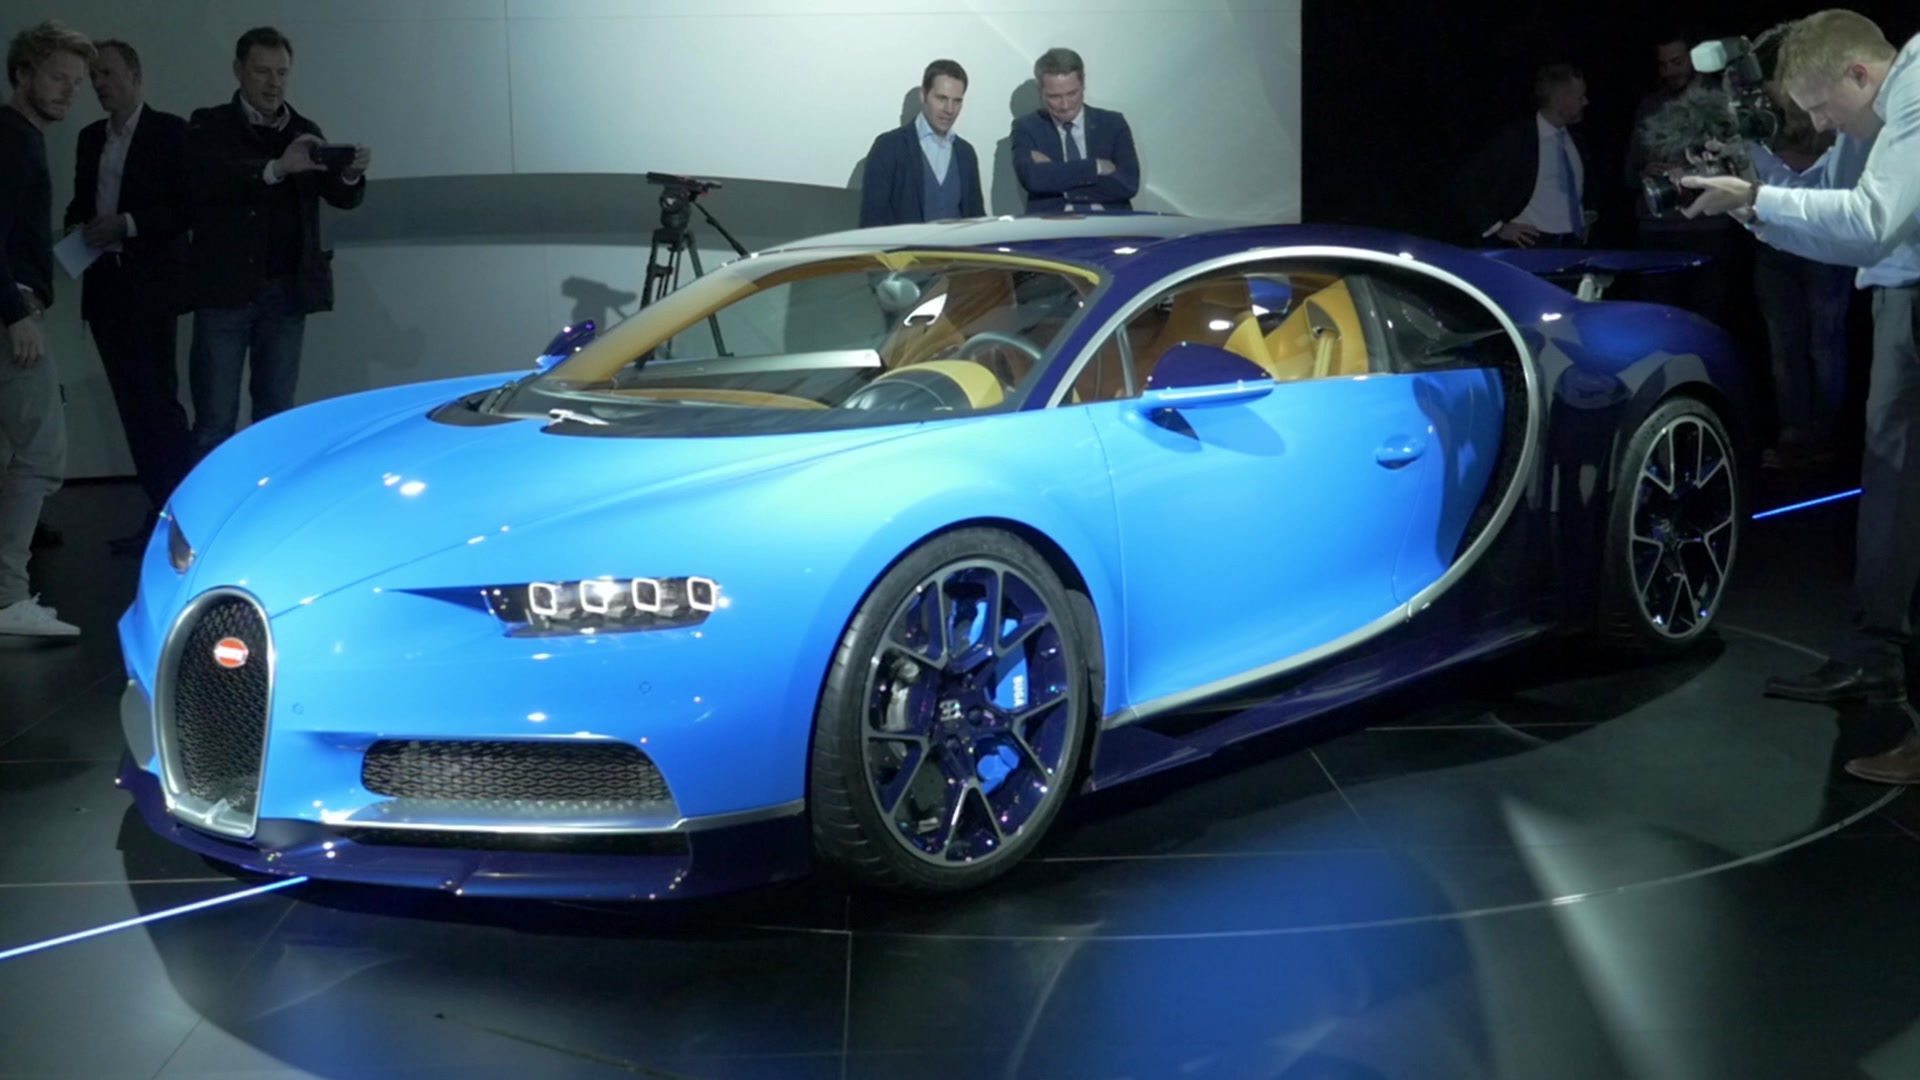 Bugatti Chiron Sport Introduced In Geneva Improves Handling, Not Much Else  - Autoblog